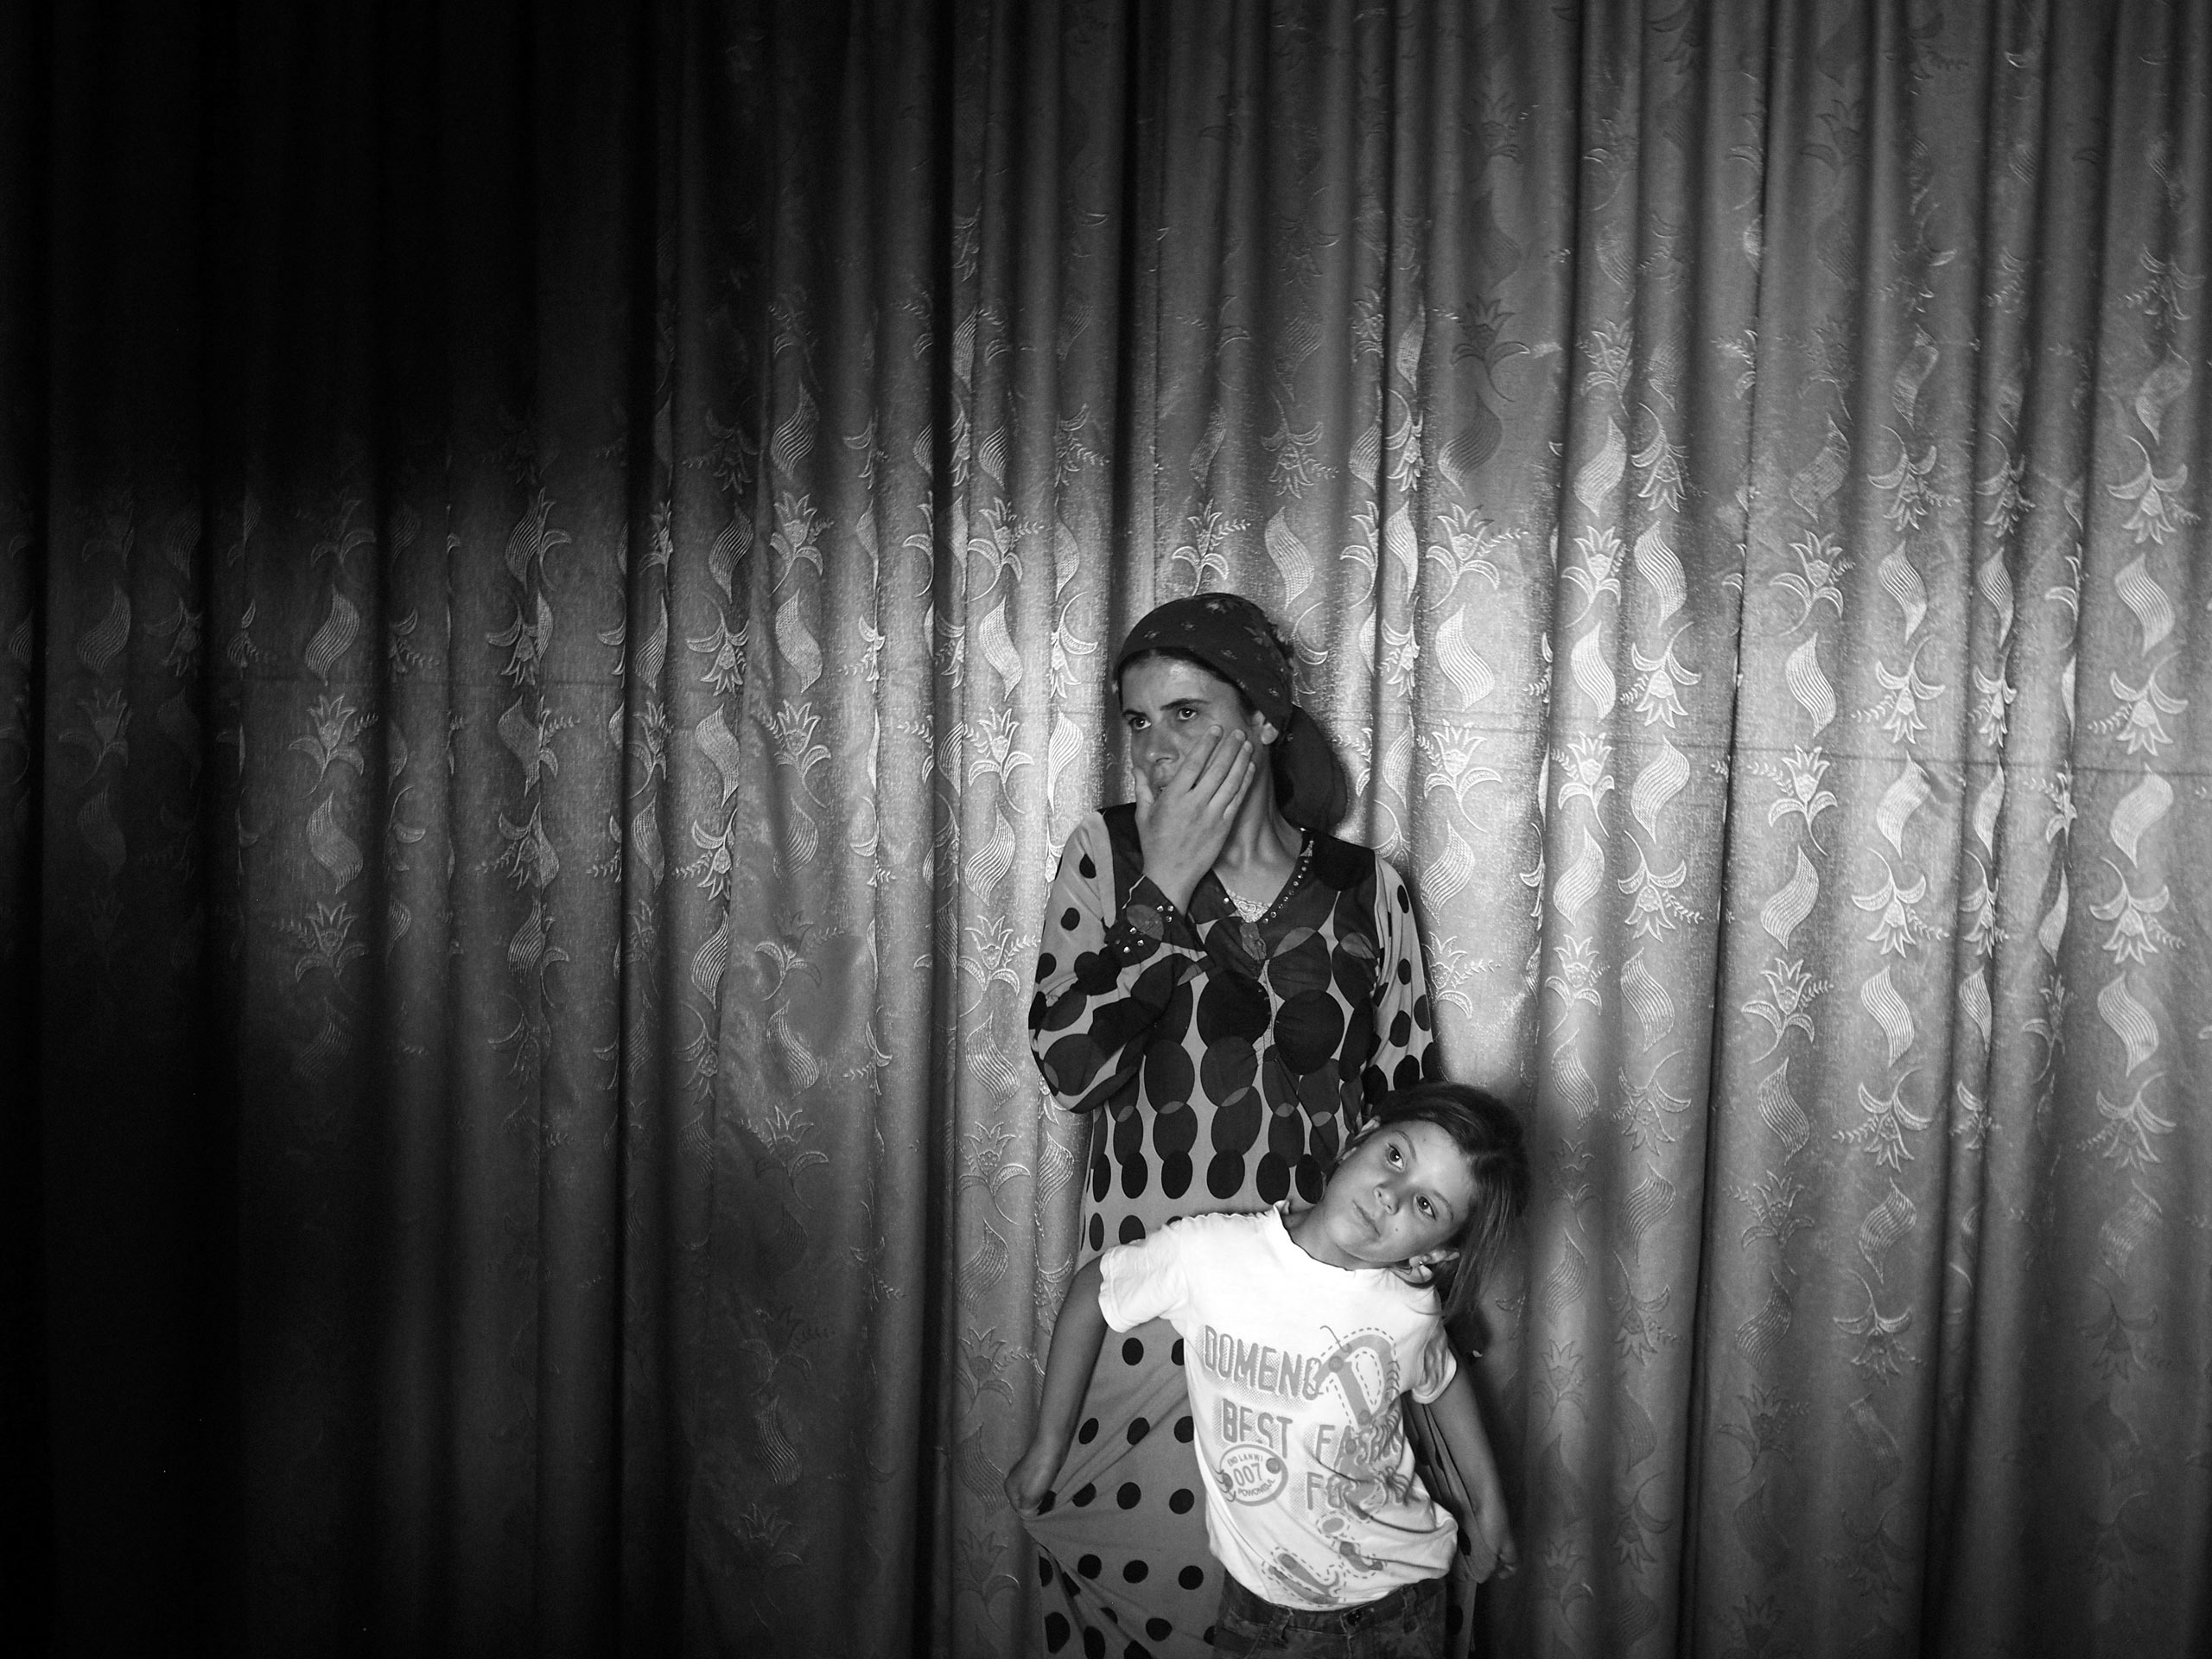 Shireen, 33, the widow of a YPG fighter, with her daughter, Astera, inside their home in Kobani. Kobani, Syria. Aug. 8, 2015.